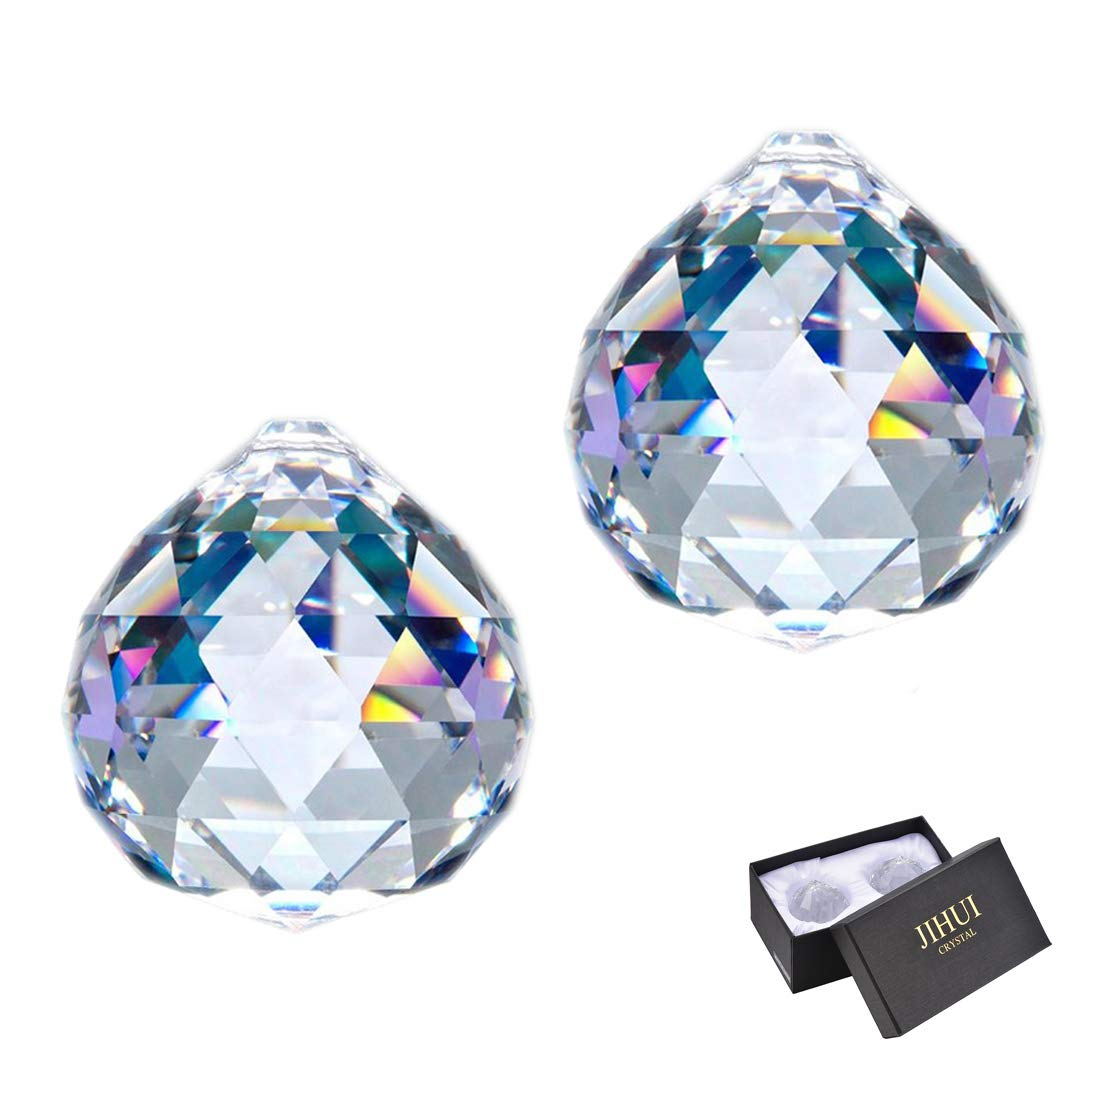 JIHUI Clear Glass Crystal Ball Prism Pendant Suncatcher 40mm Pack of 2 for Gift